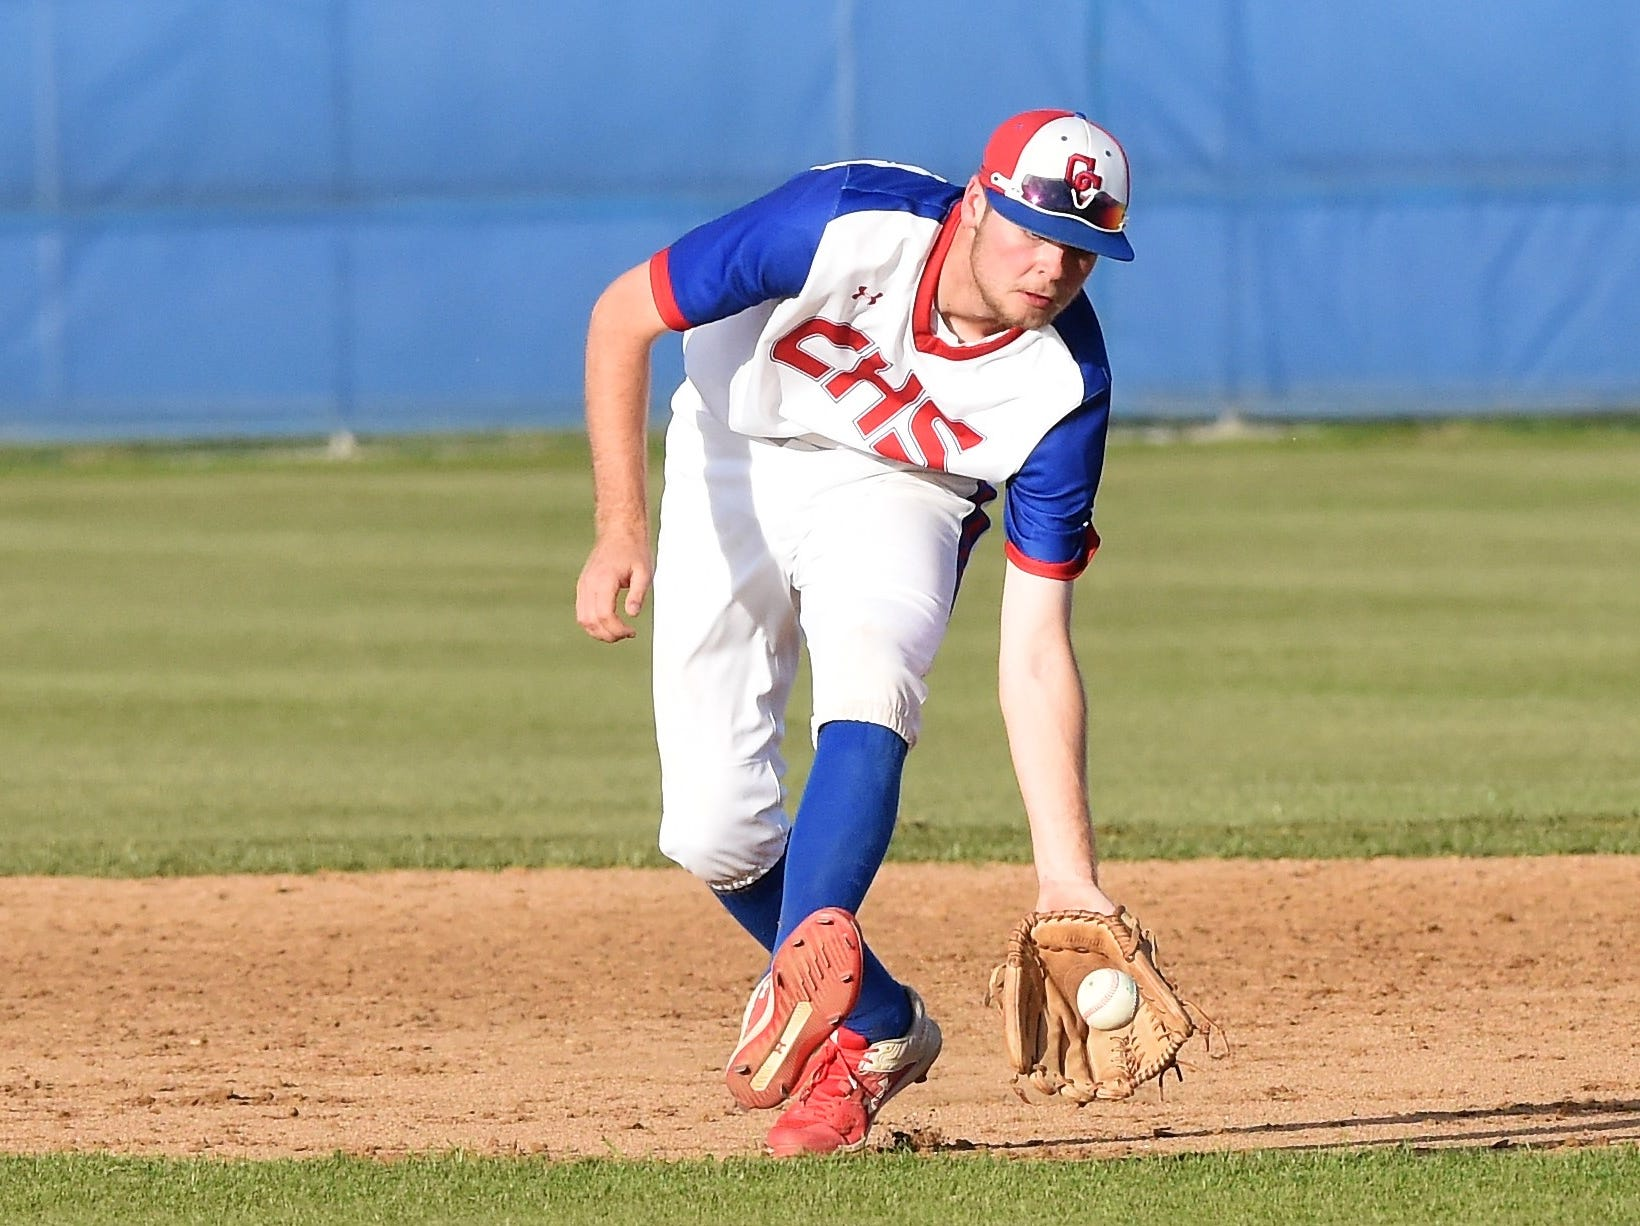 Cooper second baseman J.D. Creel (22) fields a grounder against Wylie at Cougar Field on Tuesday, April 9, 2019. The Cougars fell 11-5.